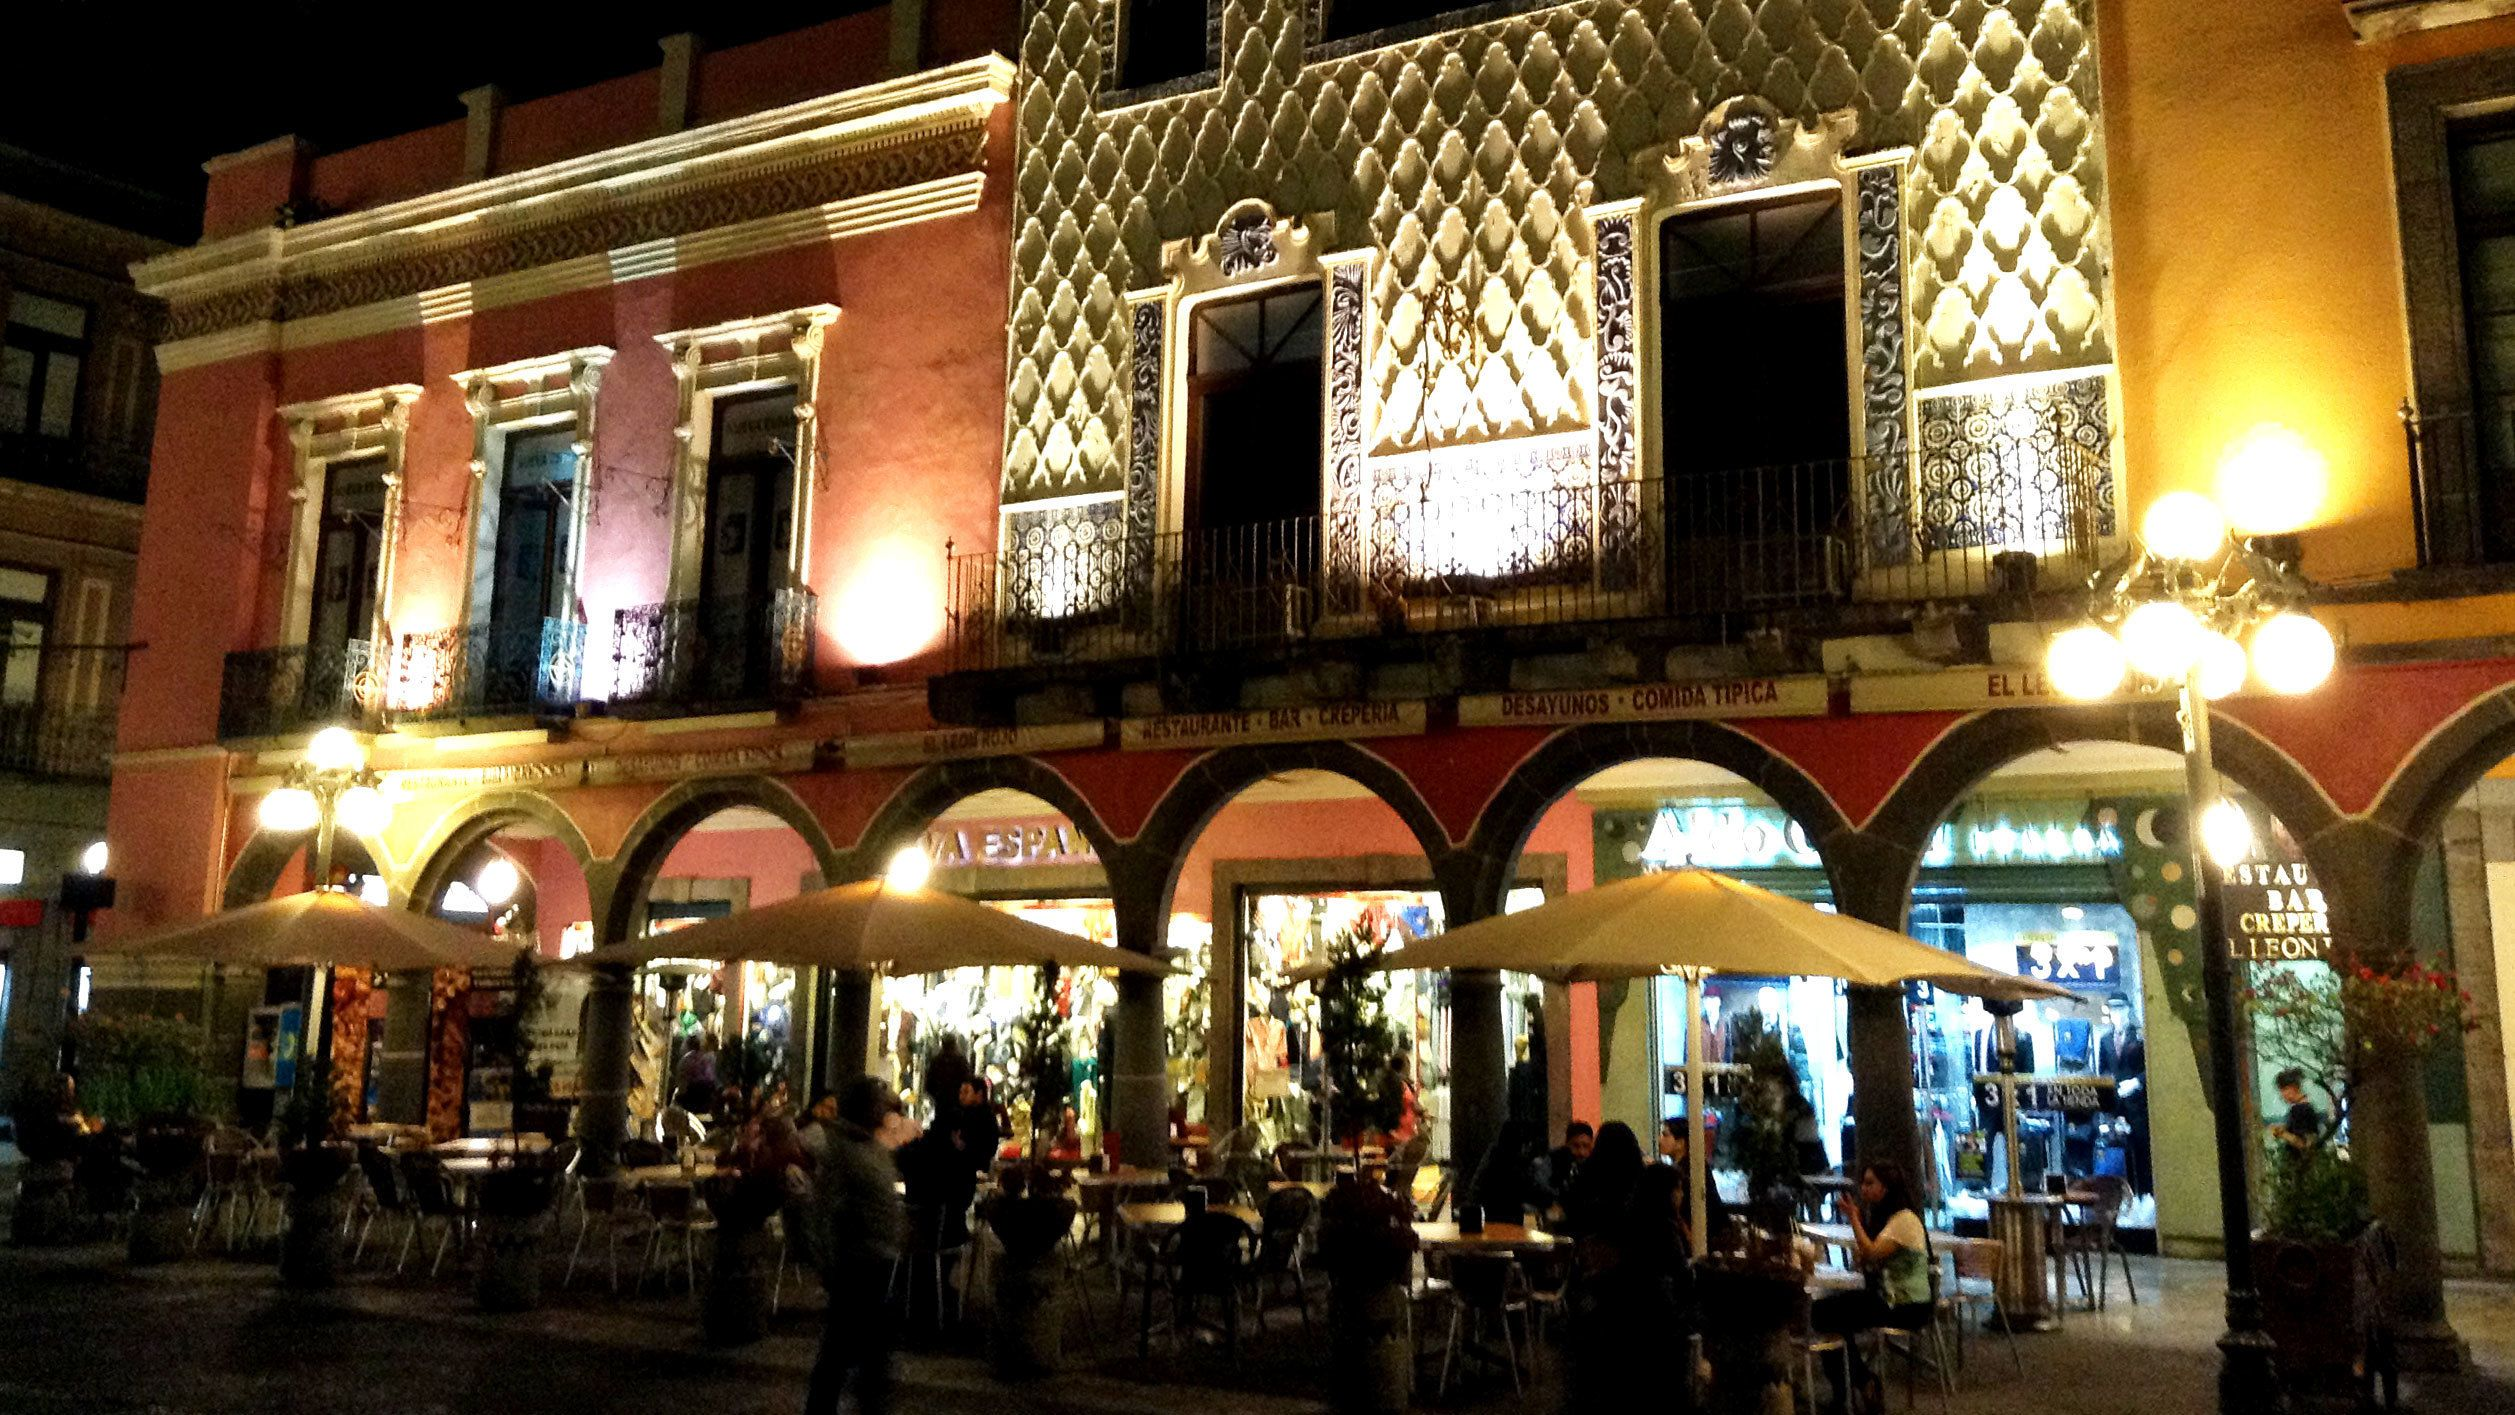 View of restaurant at night in Puebla